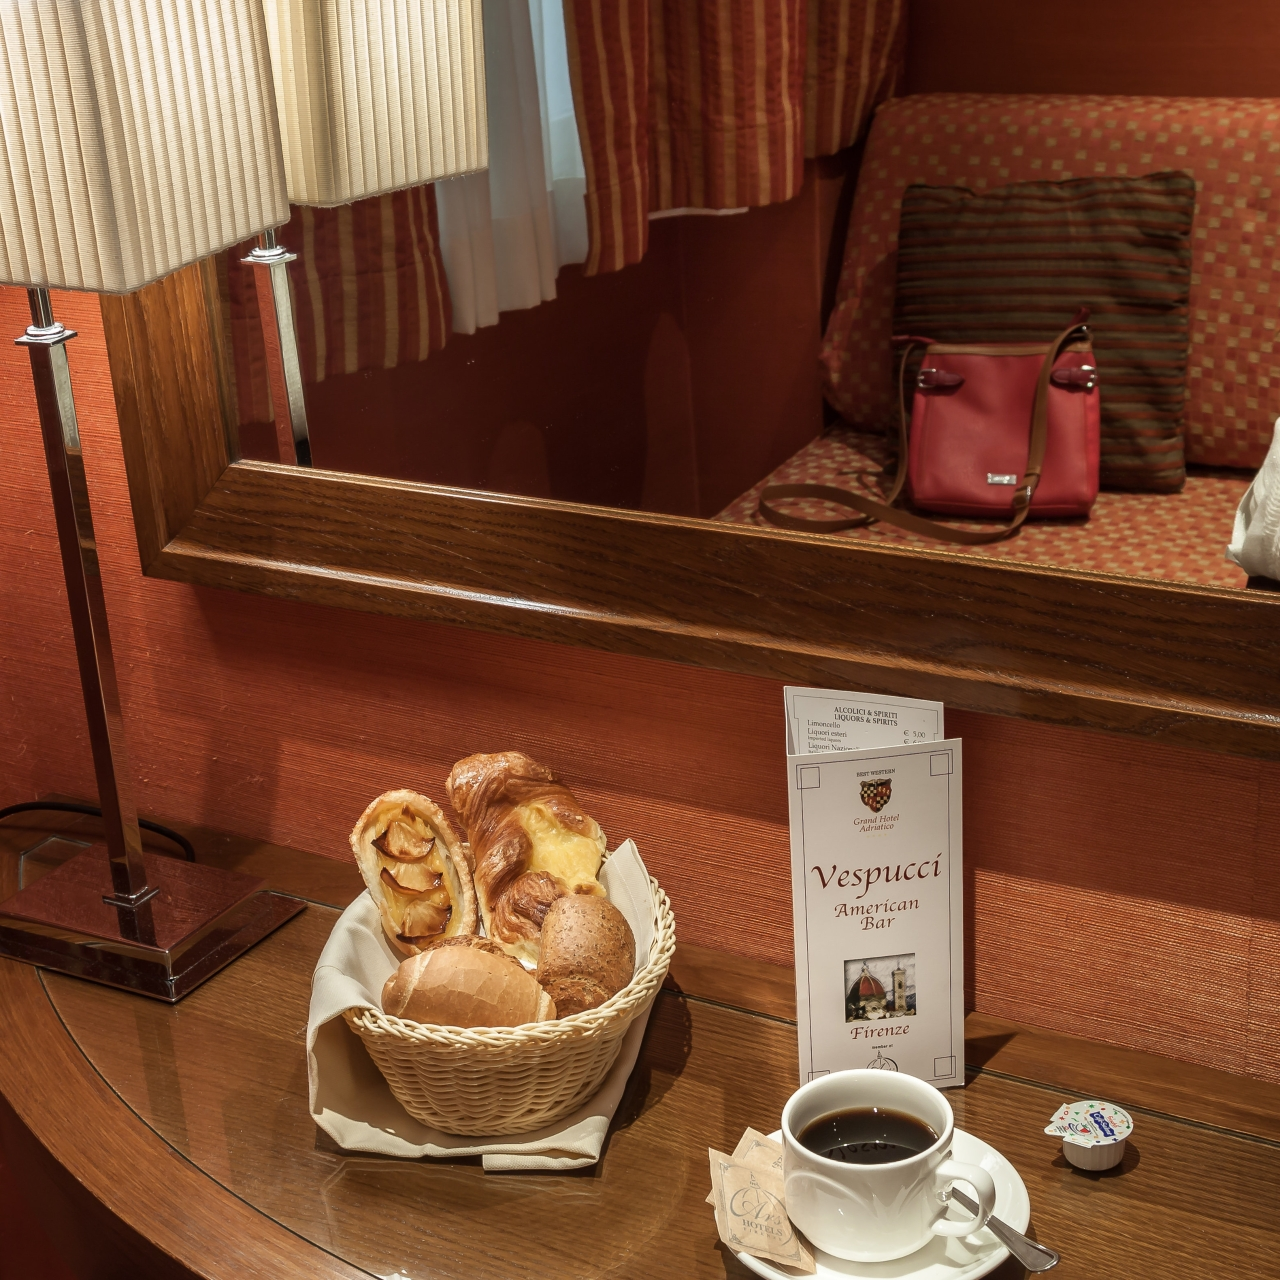 Grand Hotel Adriatico Italy At Hrs With Free Services